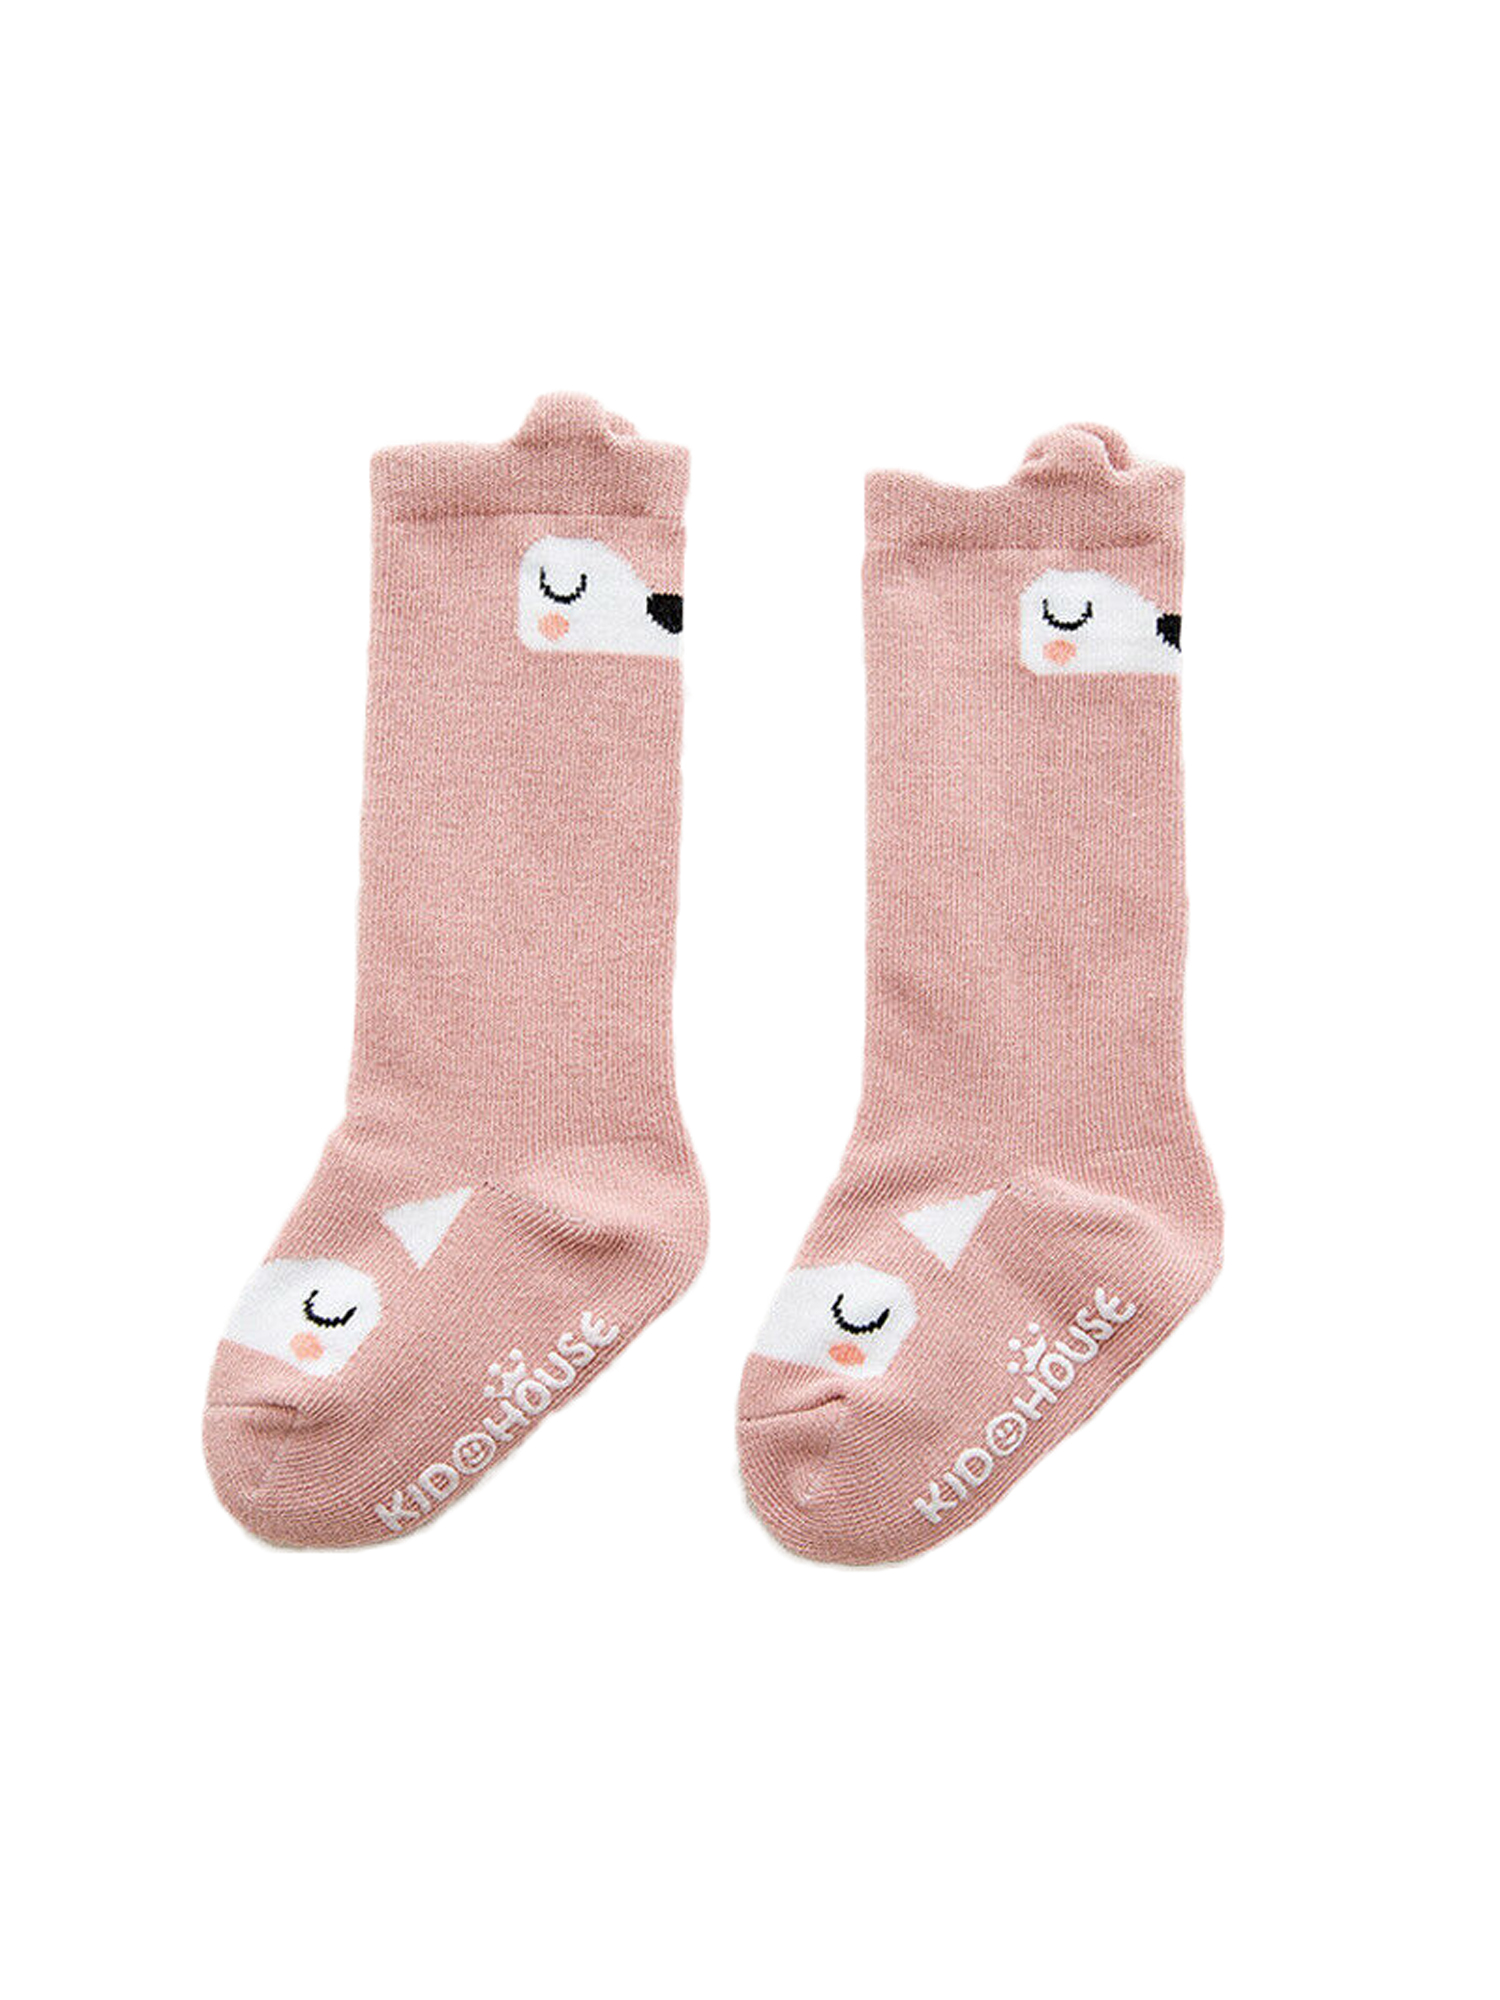 Style Unisex Socks Casual Knee High Stockings Pink Pig Faces Cotton Socks One Size